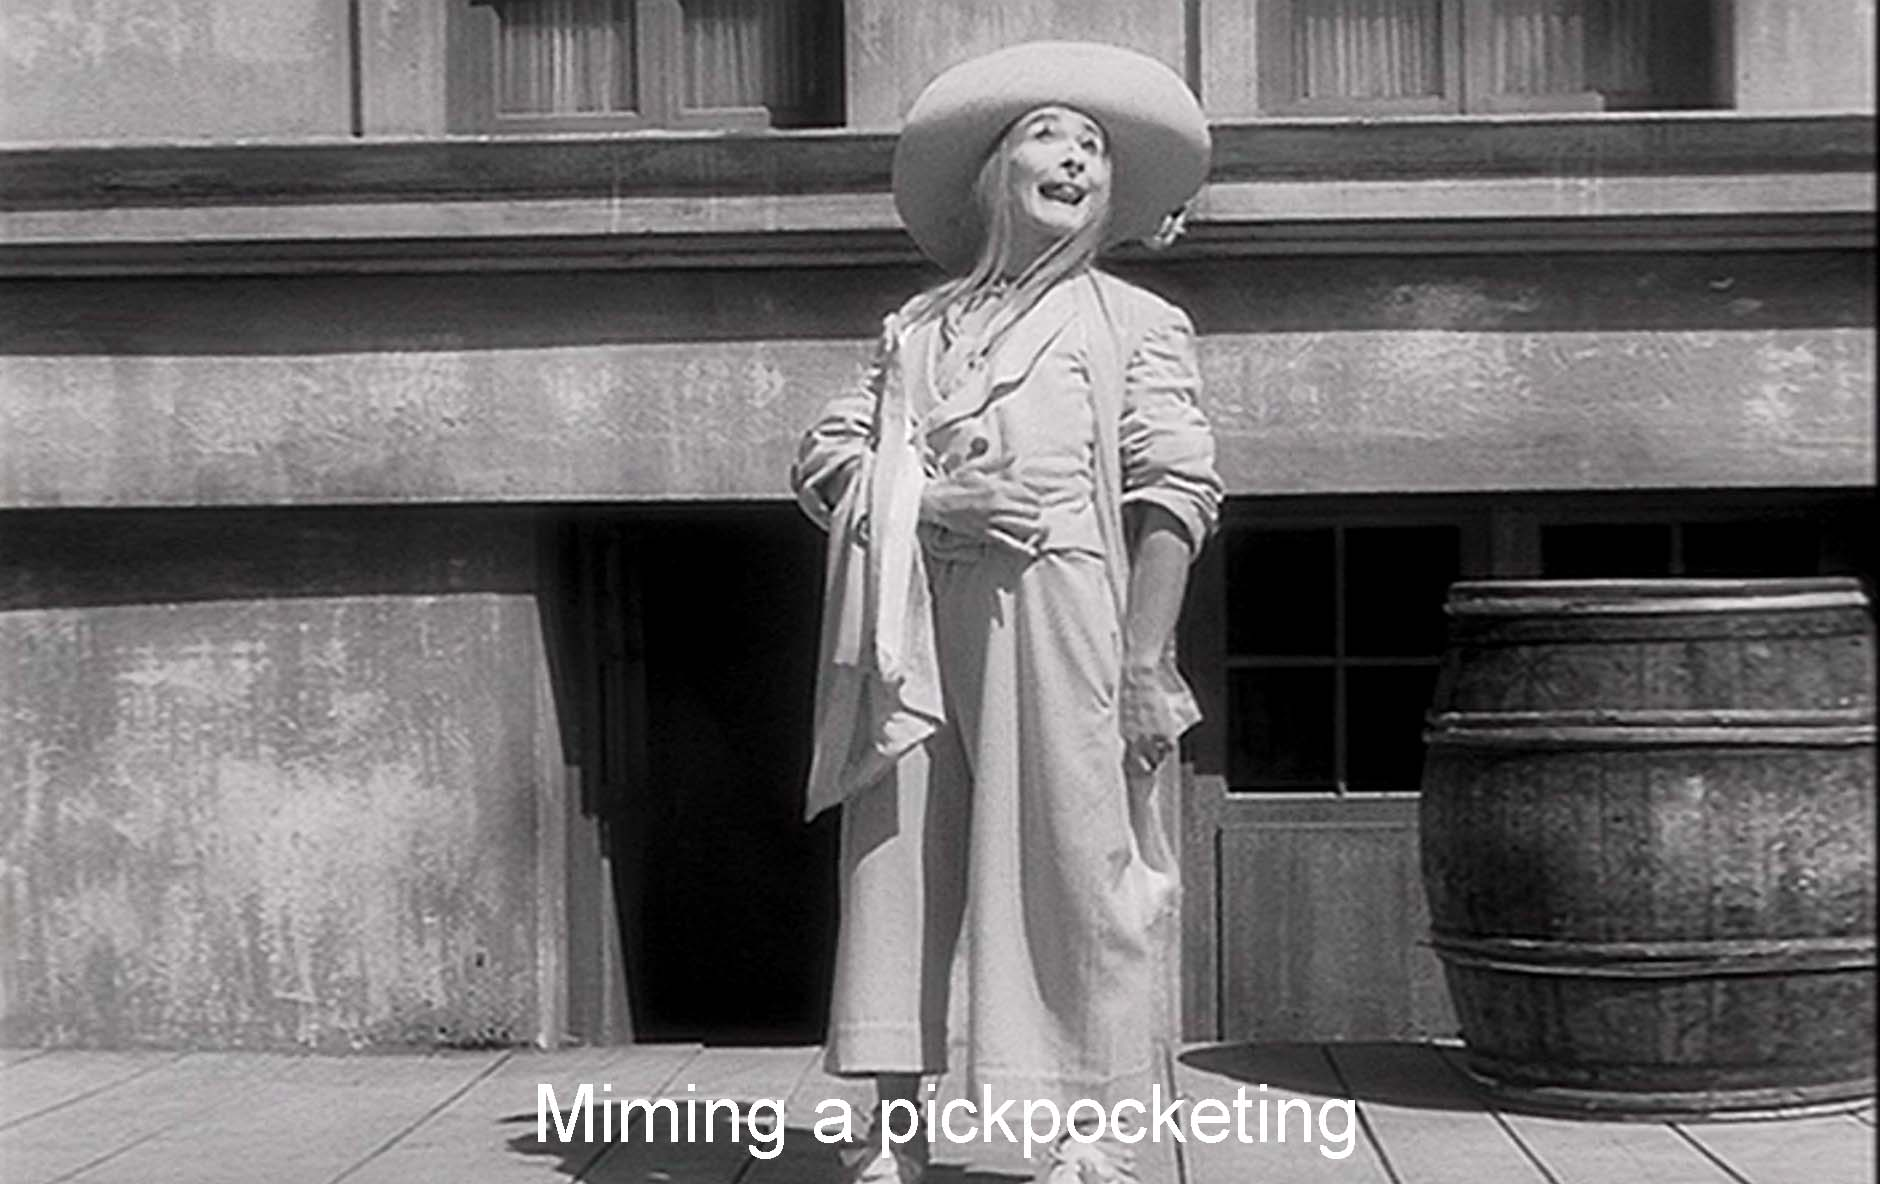 Miming a pickpocketing